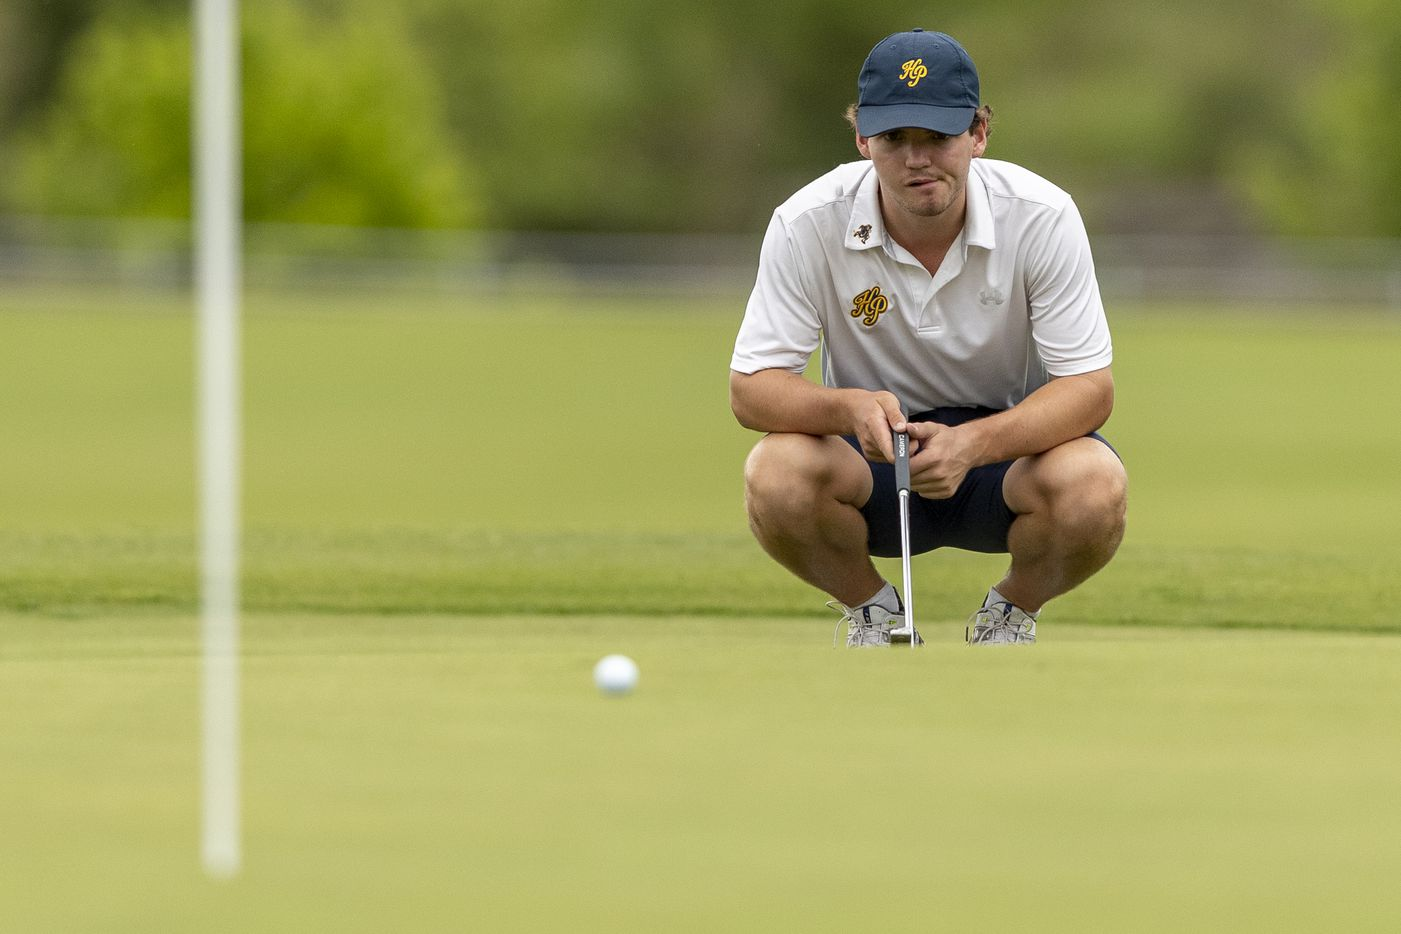 Highland ParkÕs Key Coker studies his shot on the 9th green during round 1 of the UIL Class 5A boys golf tournament in Georgetown, Monday, May 17, 2021. (Stephen Spillman/Special Contributor)